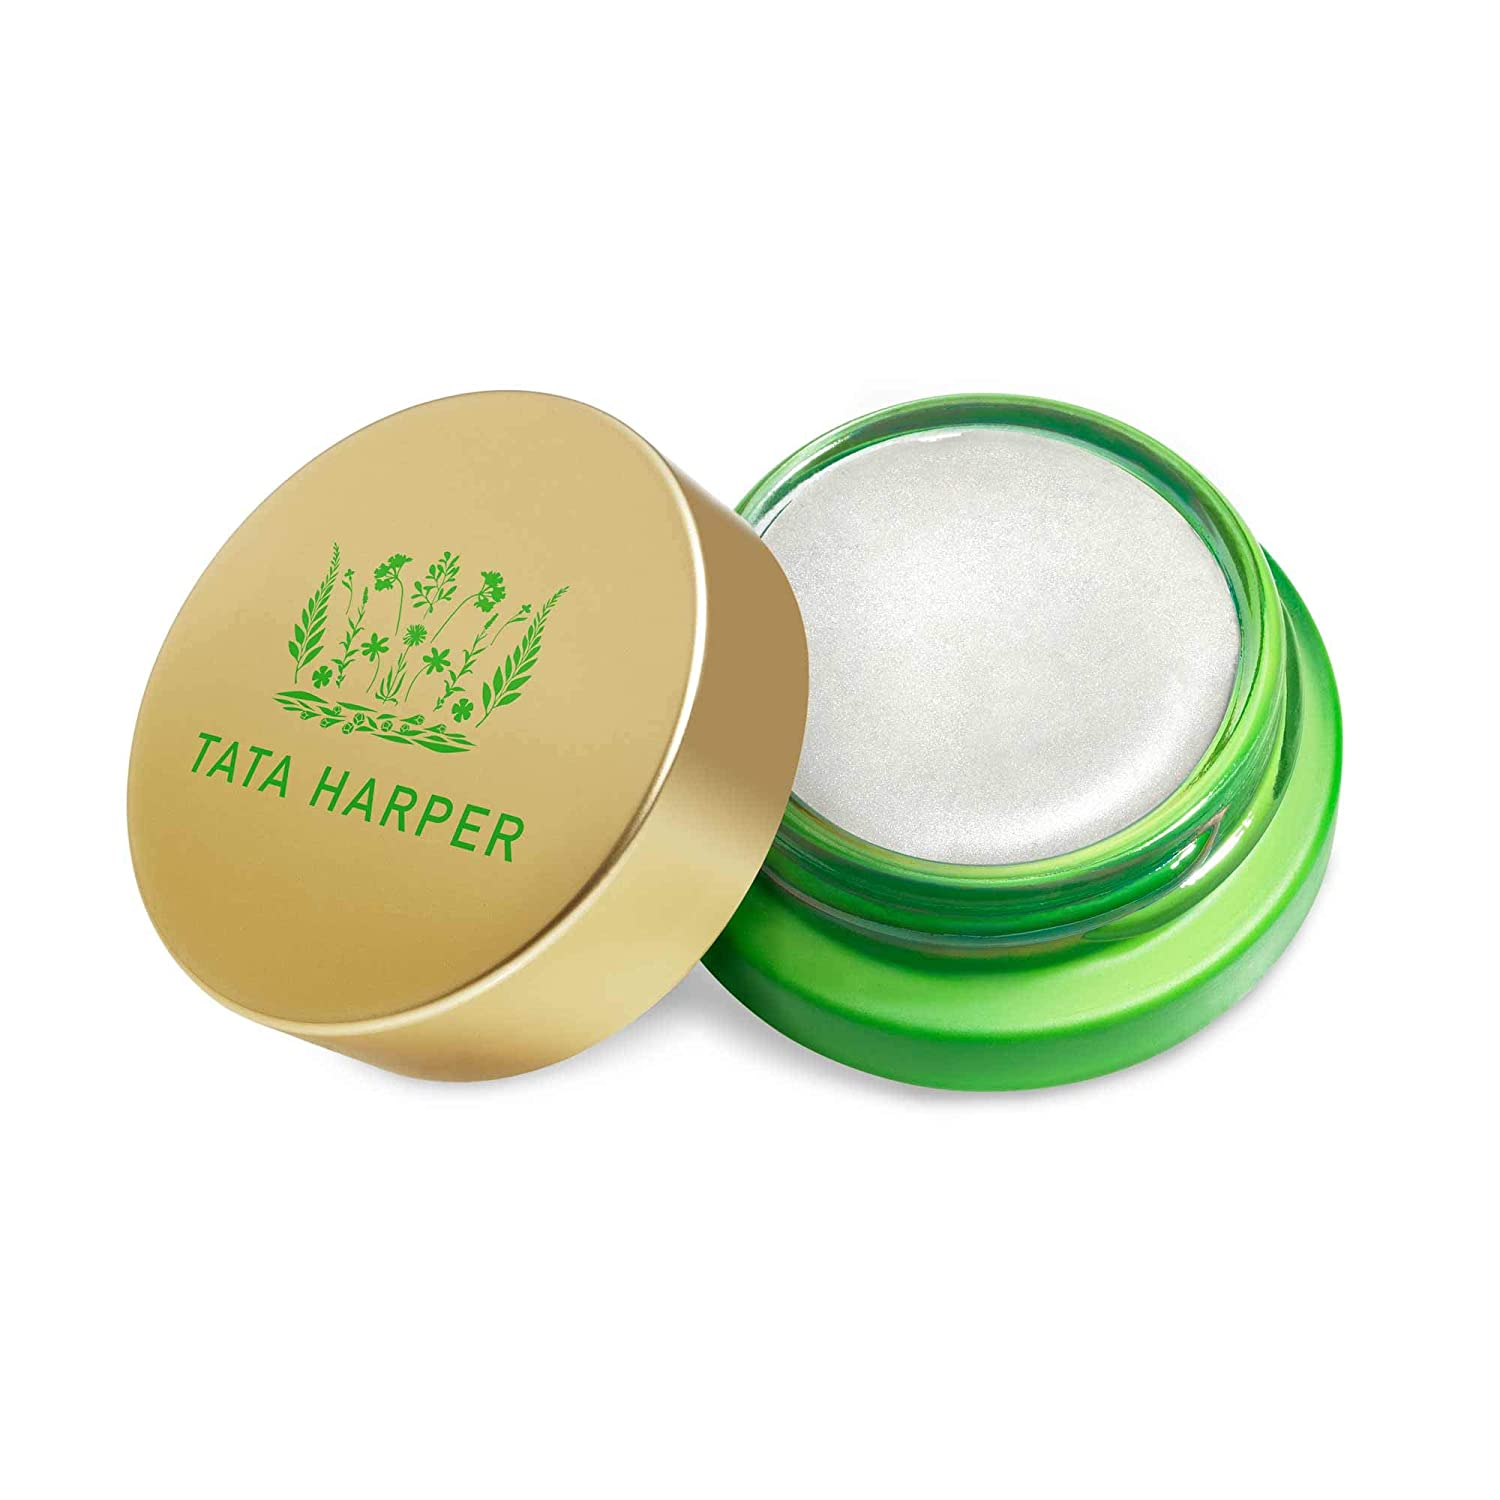 Tata Harper Very Highlighting | 100% Natural & Nontoxic | Dewy, Luminous Cream Highlighter | 4.5g